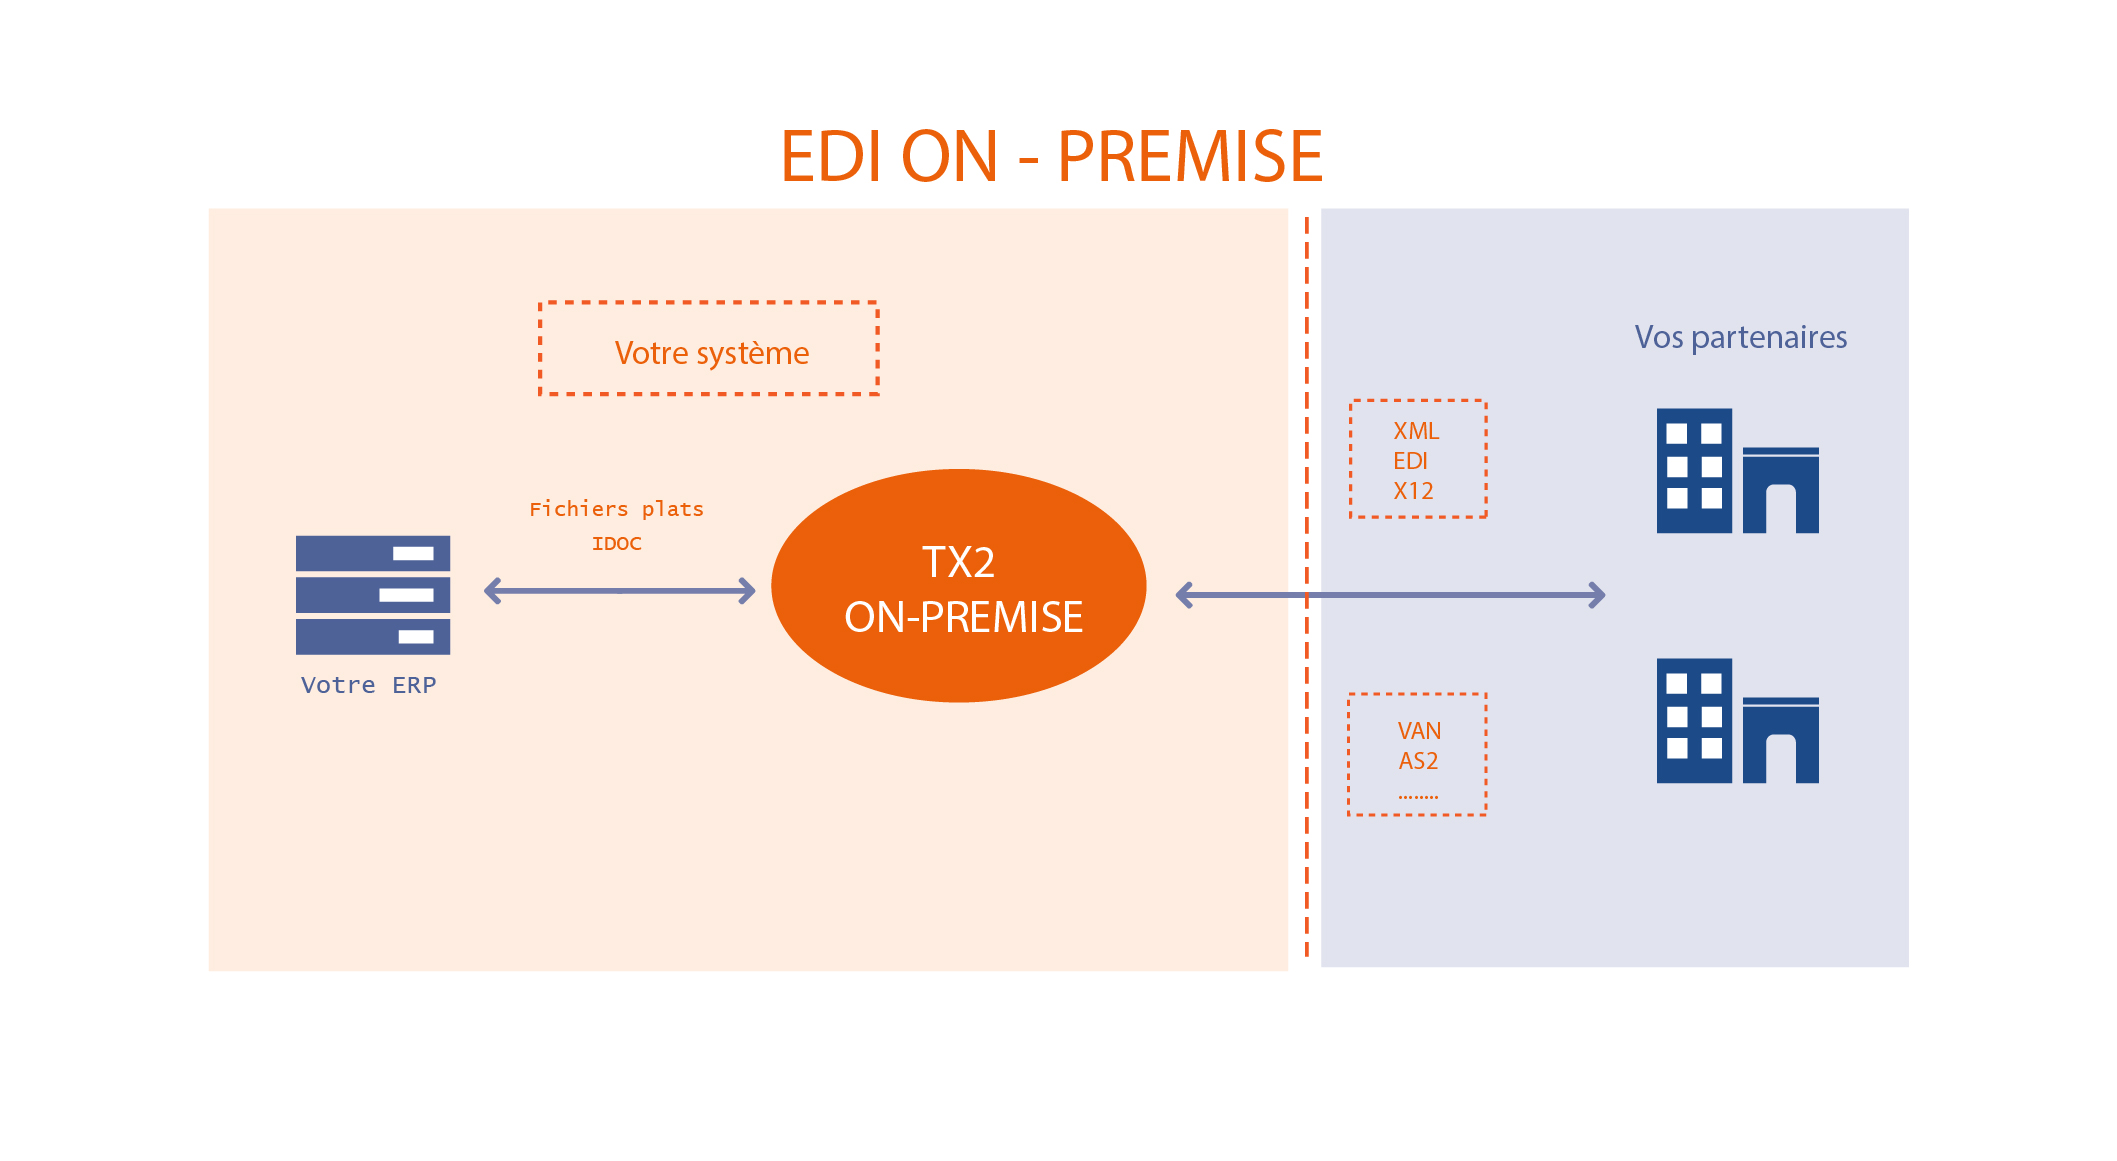 EDI ON-PREMISE